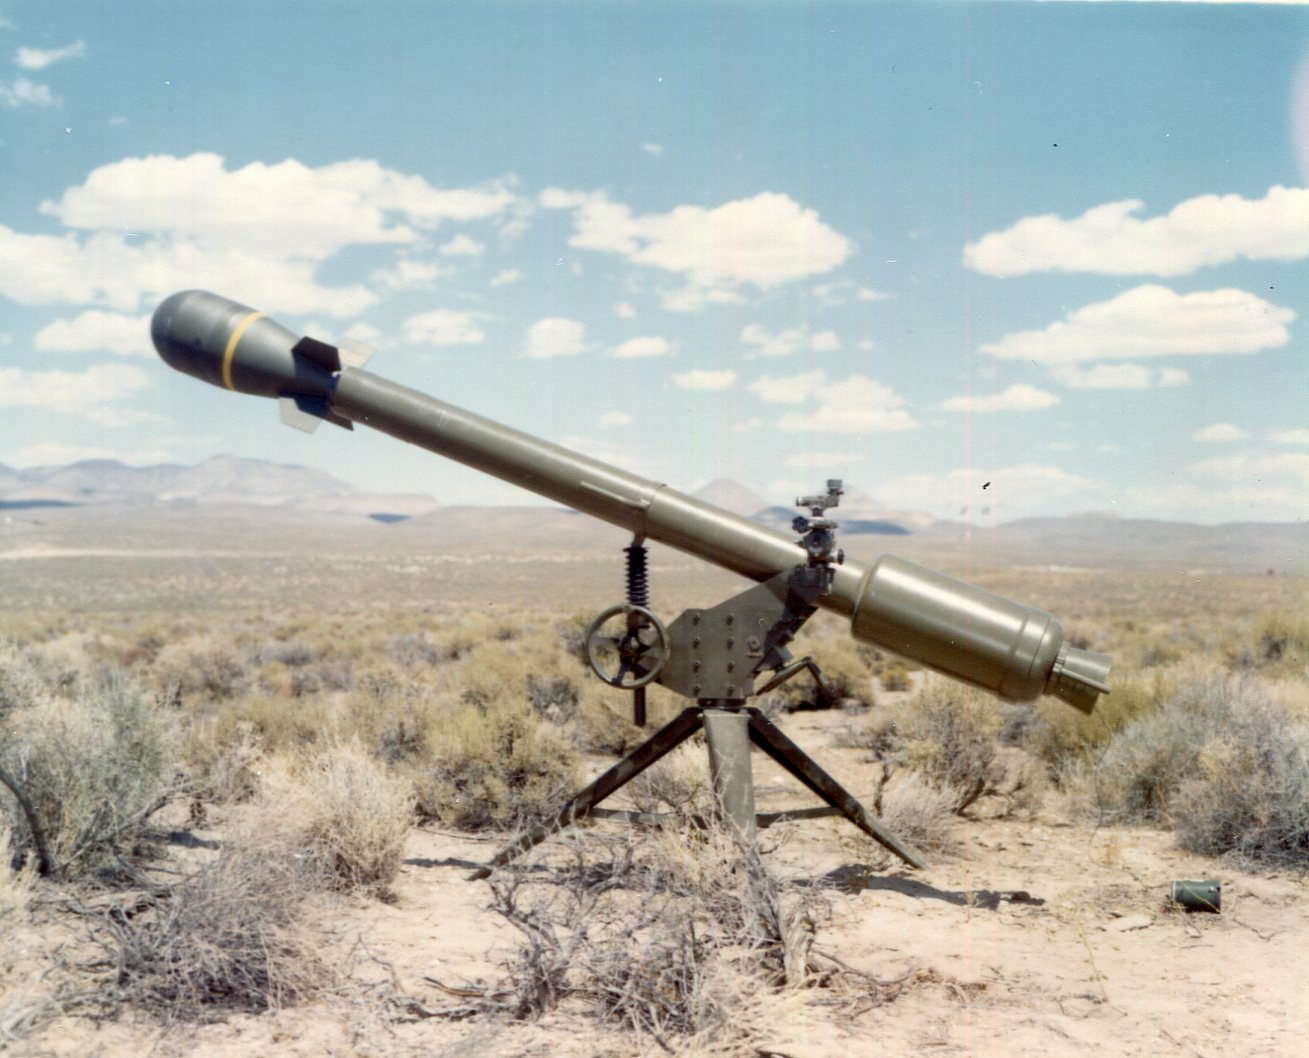 The M28 M29 Davy Crockett Nuclear Weapon System The